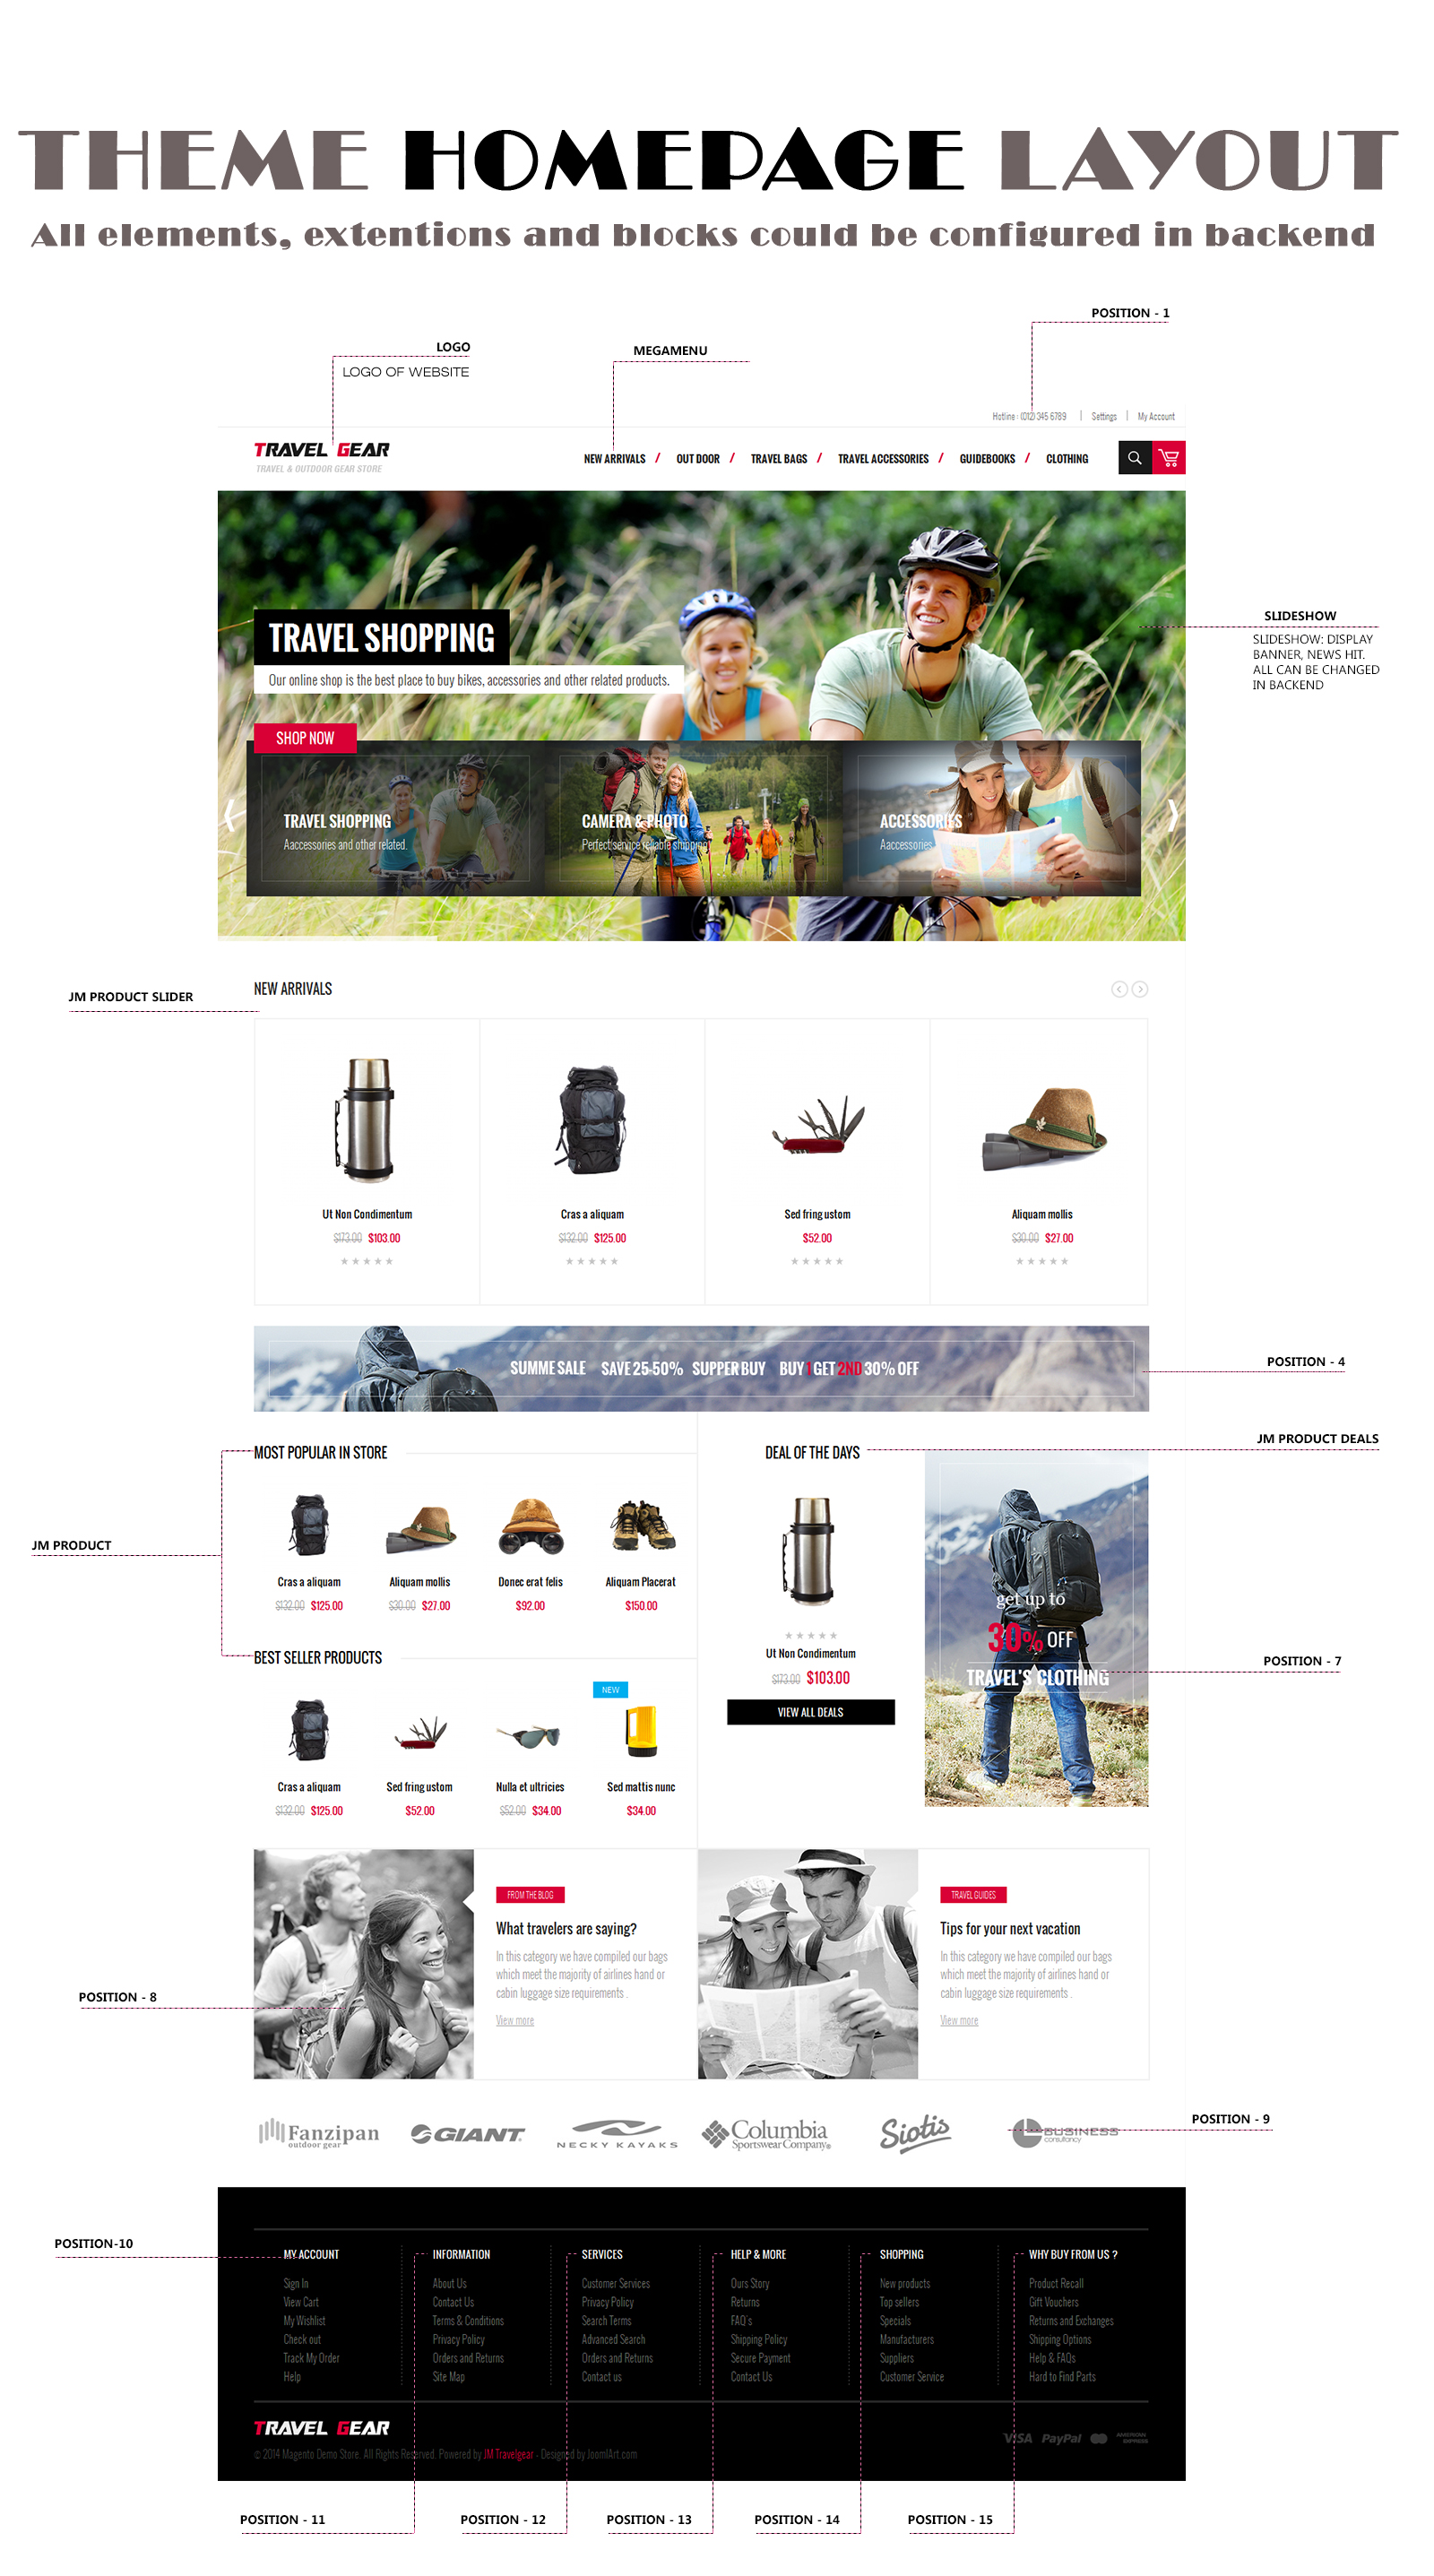 JM TravelGear Homepage